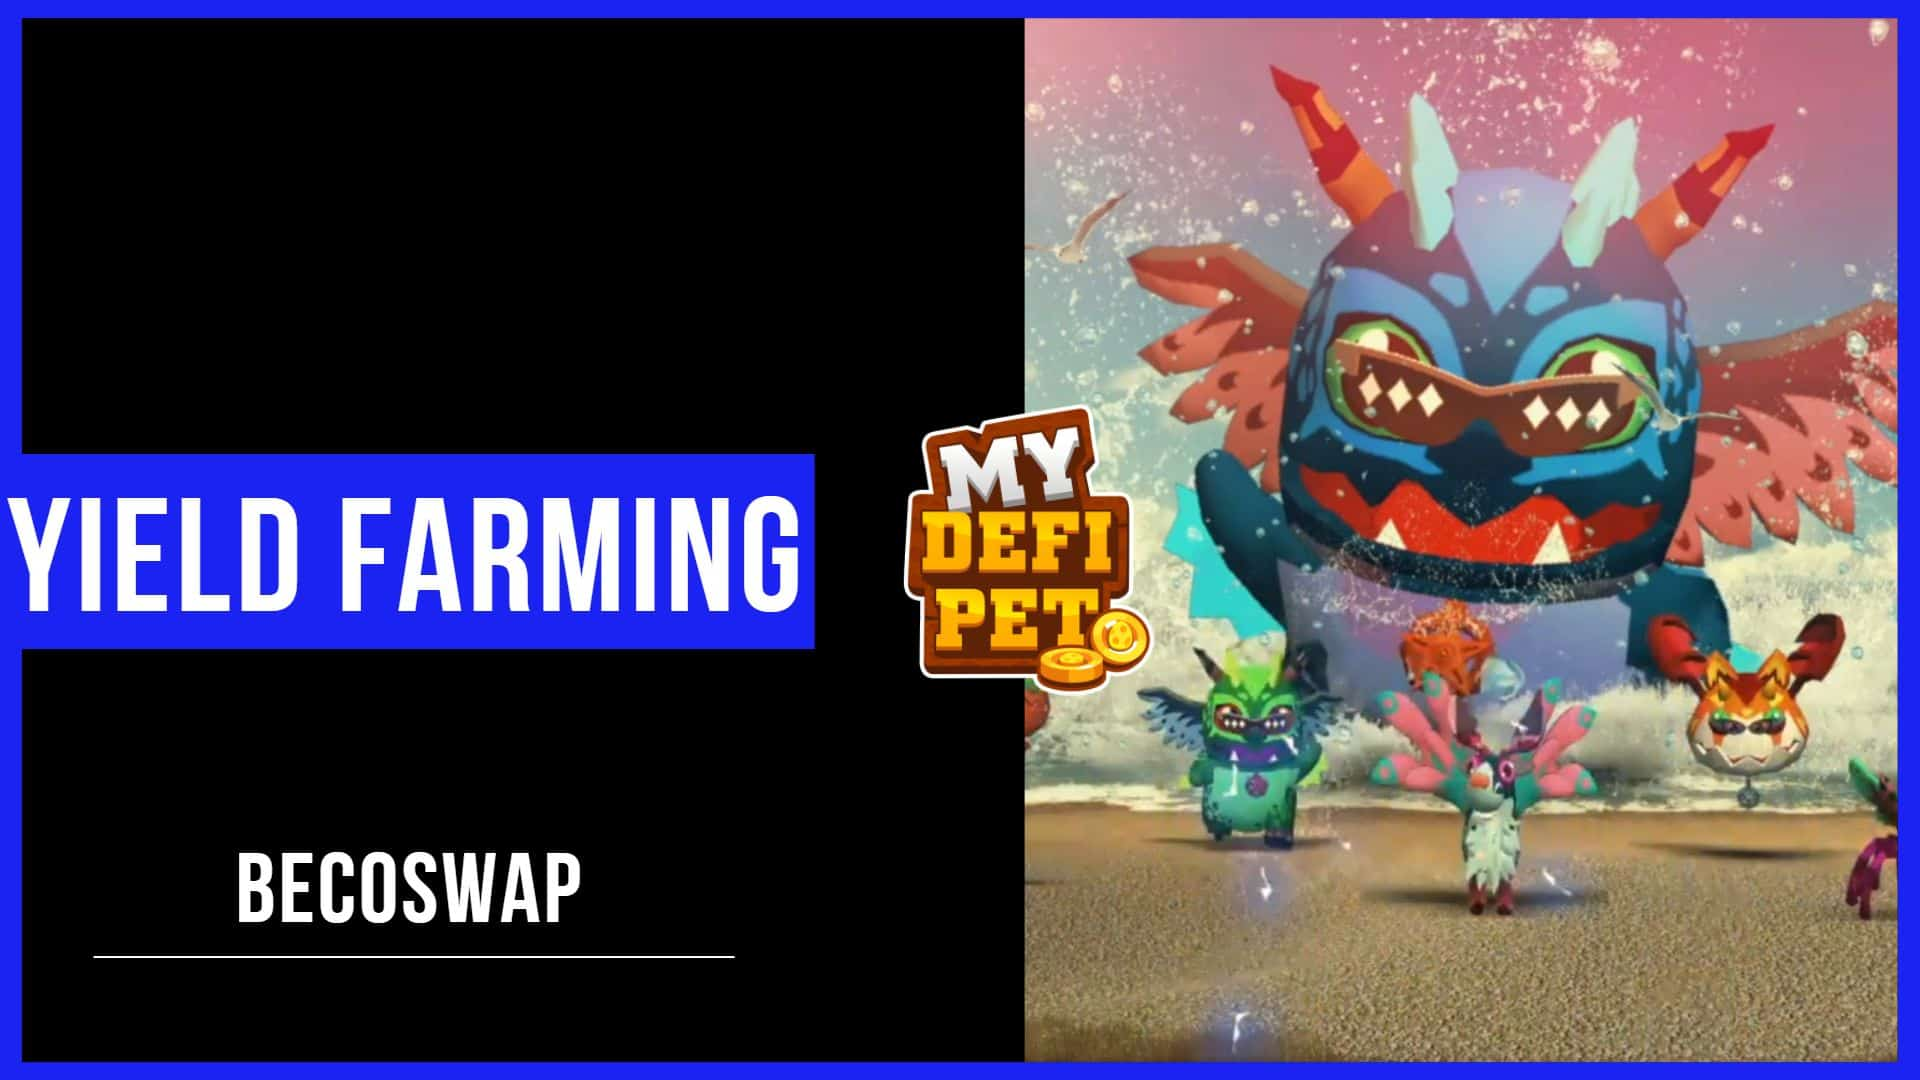 MyDefiPet Becoswap